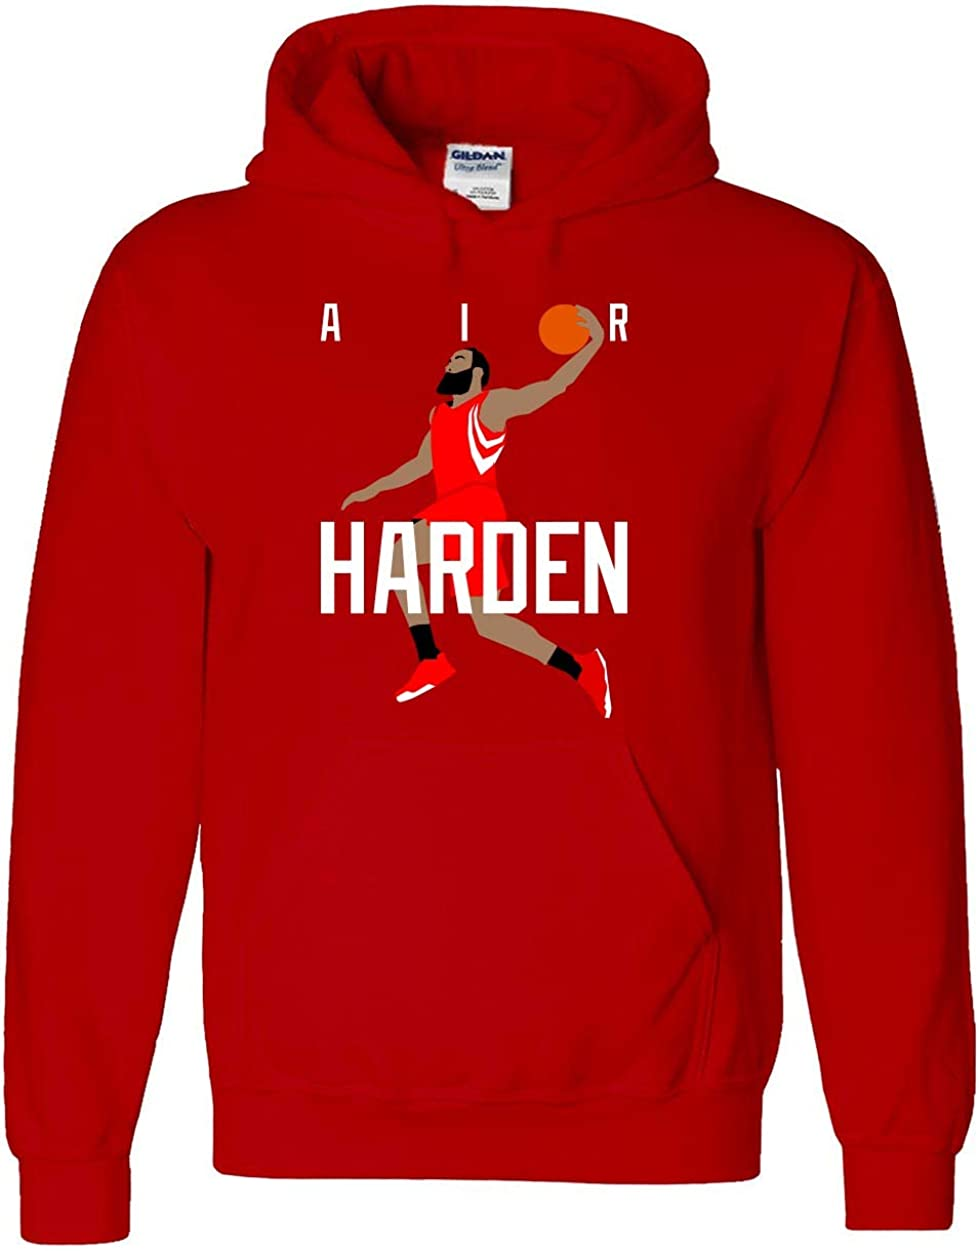 RED Houston Harden Air Pic Hooded Sweatshirt